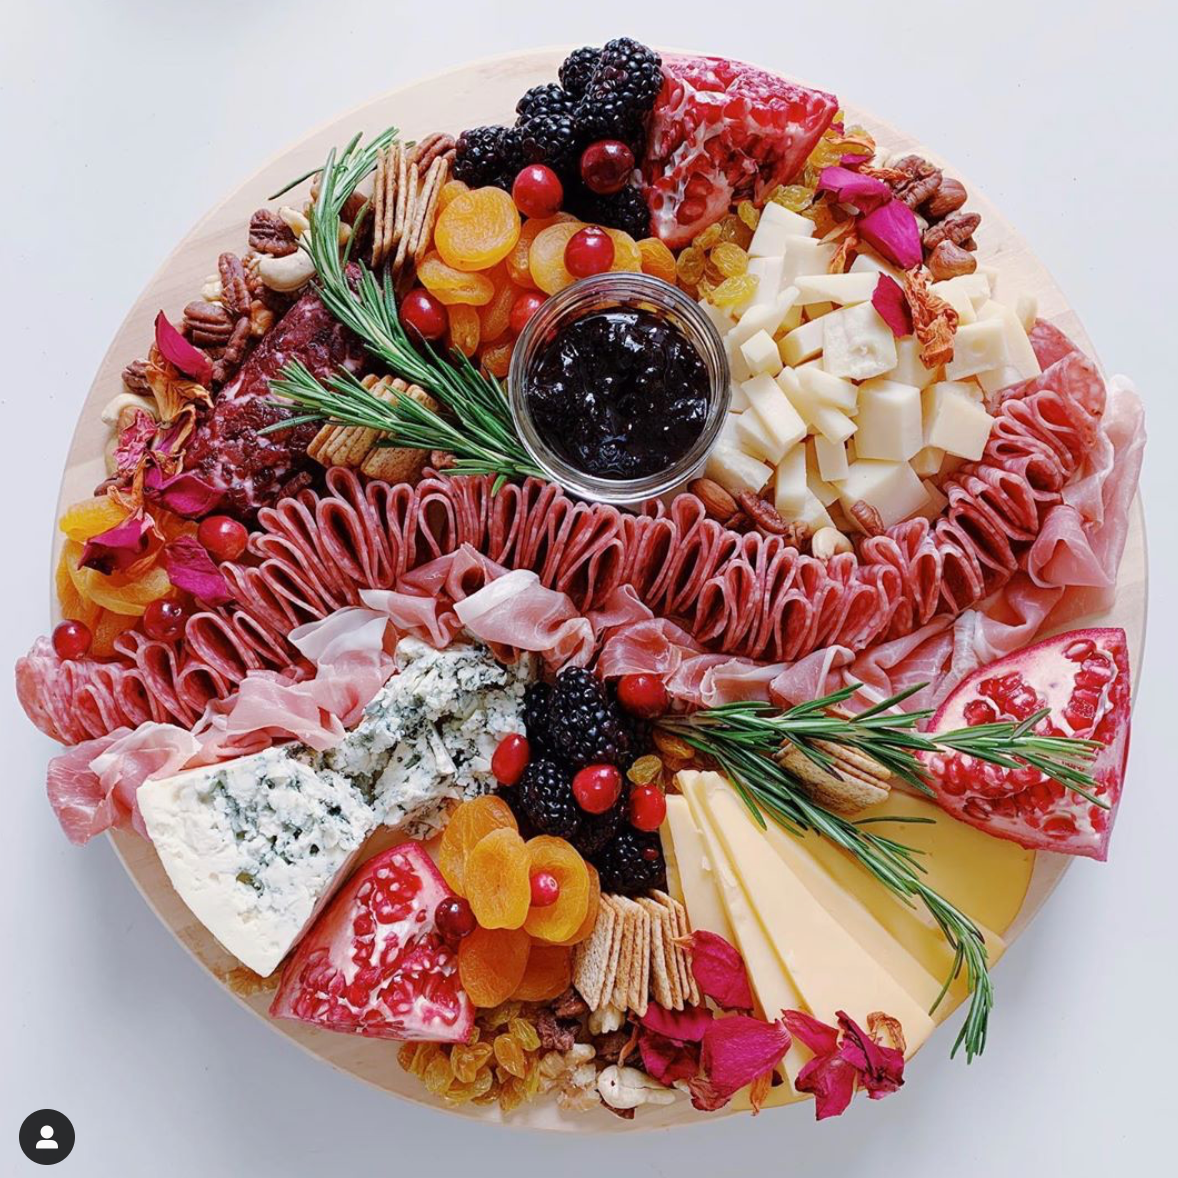 cheese plate courtesy of That Cheese Plate